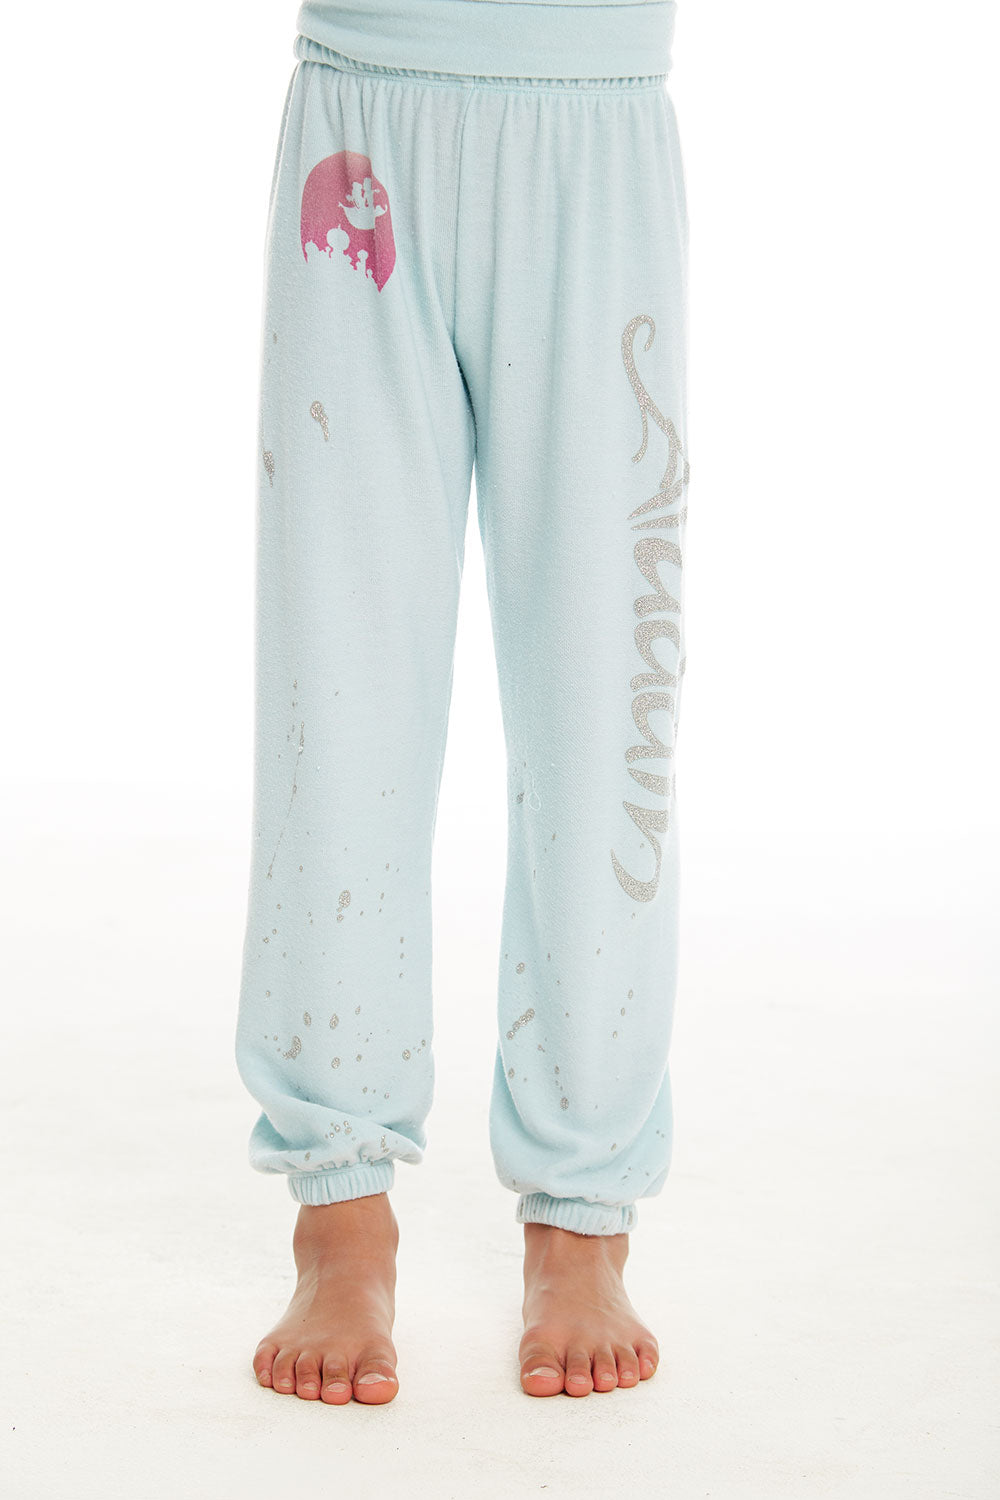 Disney Aladdin - Magic Carper Pants, Girls, chaserbrand.com,chaser clothing,chaser apparel,chaser los angeles